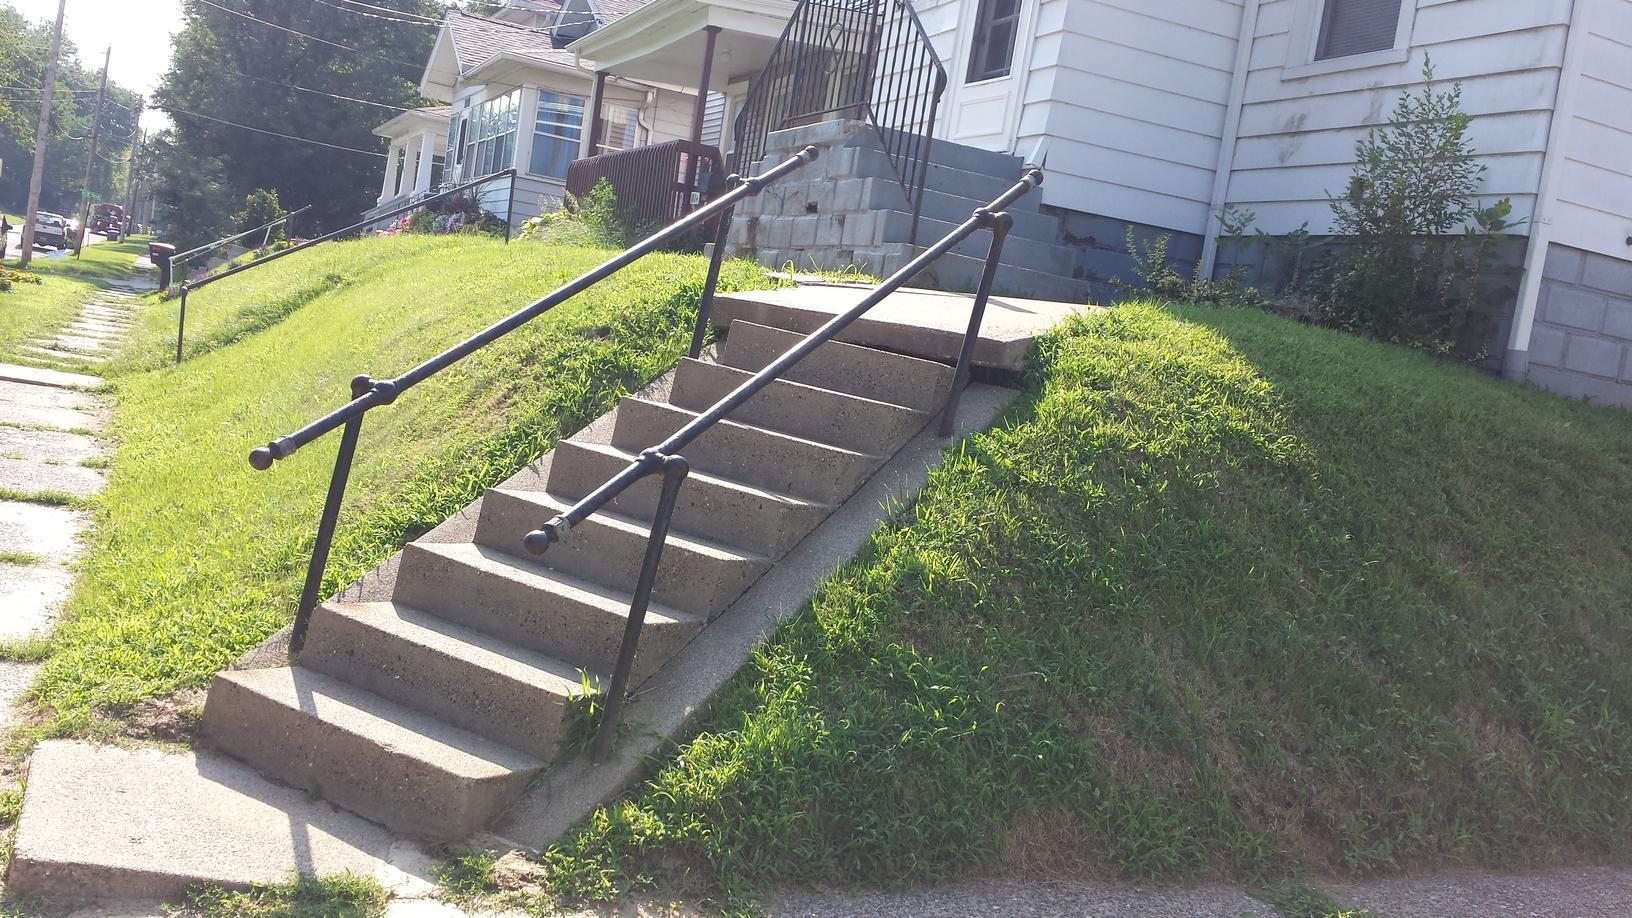 The concrete steps are sinking and uneven. They are a trip hazard and dangerous.